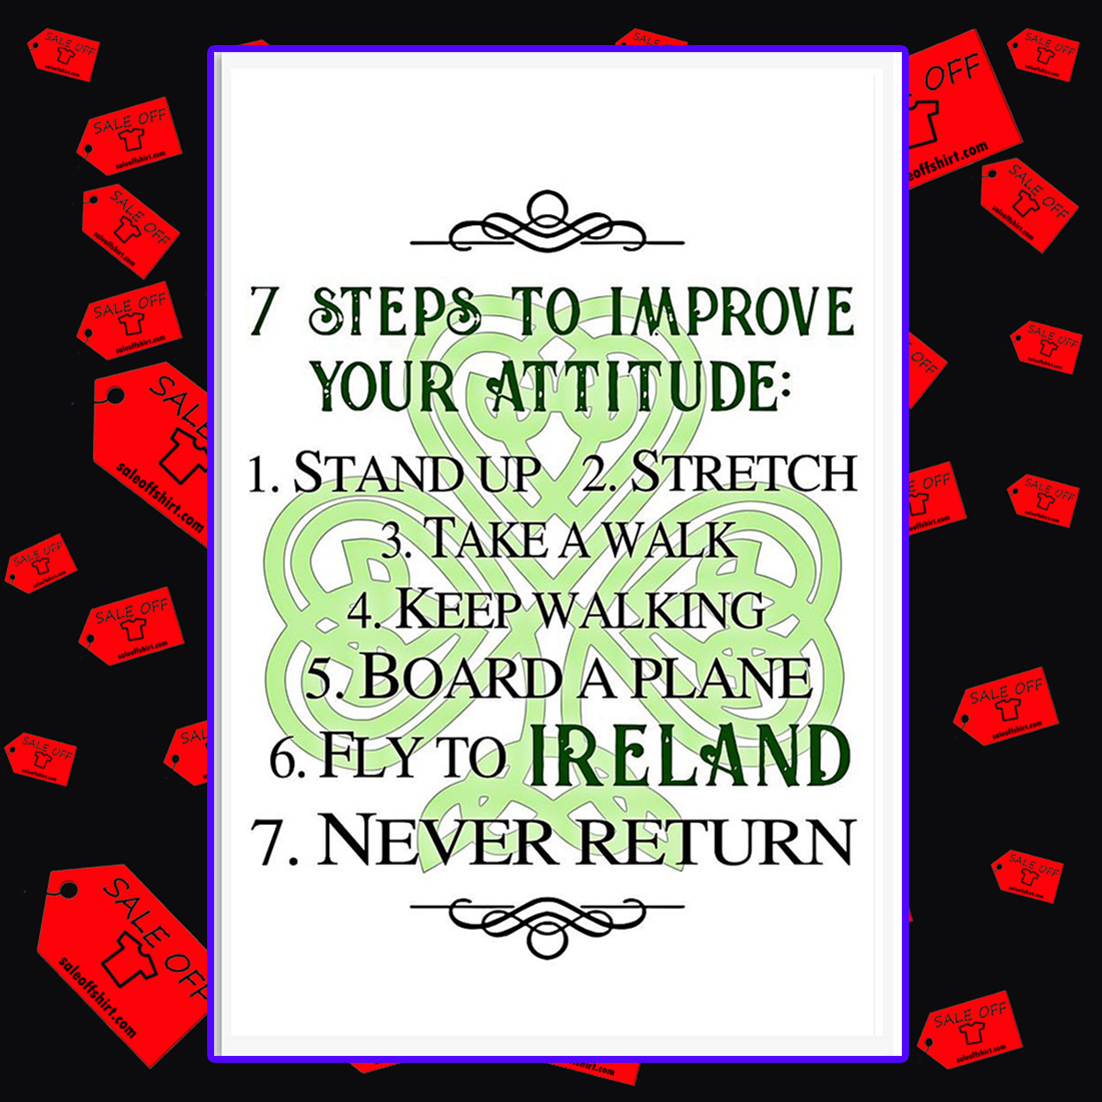 7 steps to improve your attitude poster 24x36